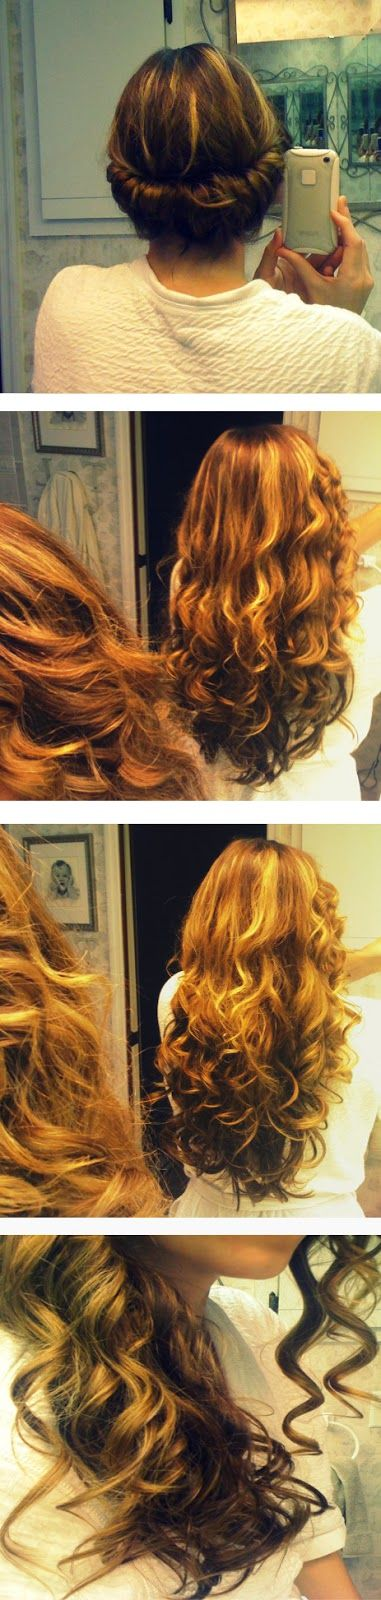 This has never curled my hair like that, but maybe it would do something if I decided to change it in some way. Worth a try.